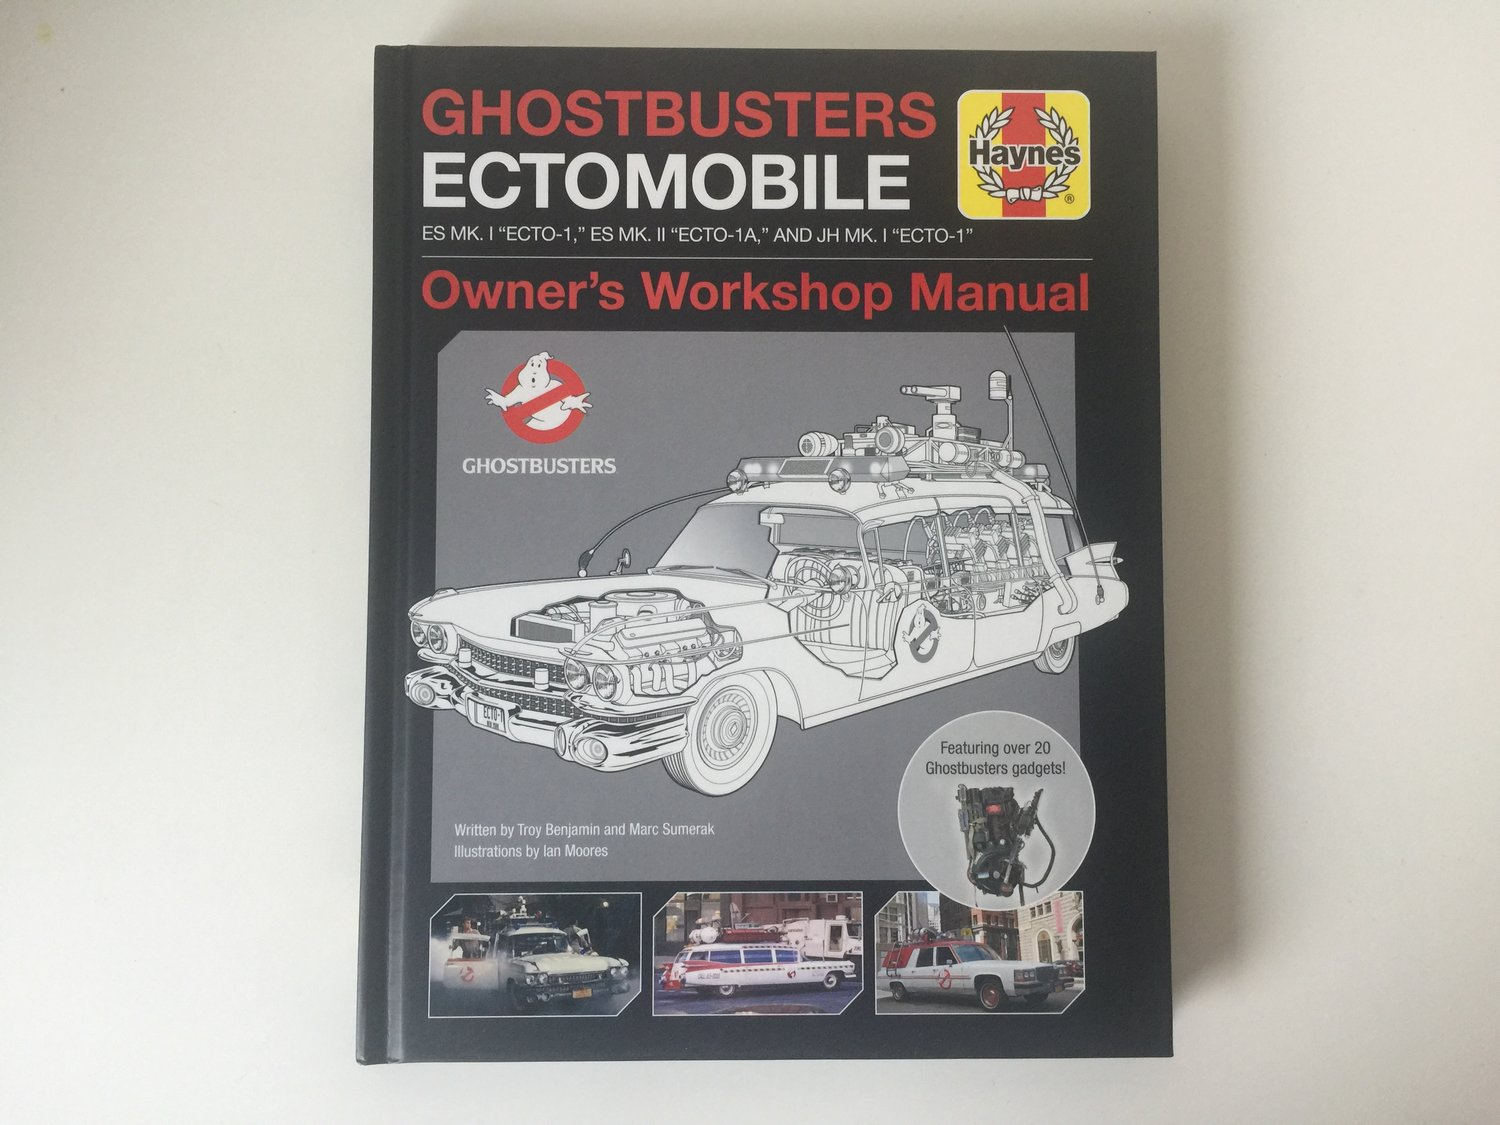 In Stores and Online Now: Ghostbusters Ectomobile Owner's Workshop Manual